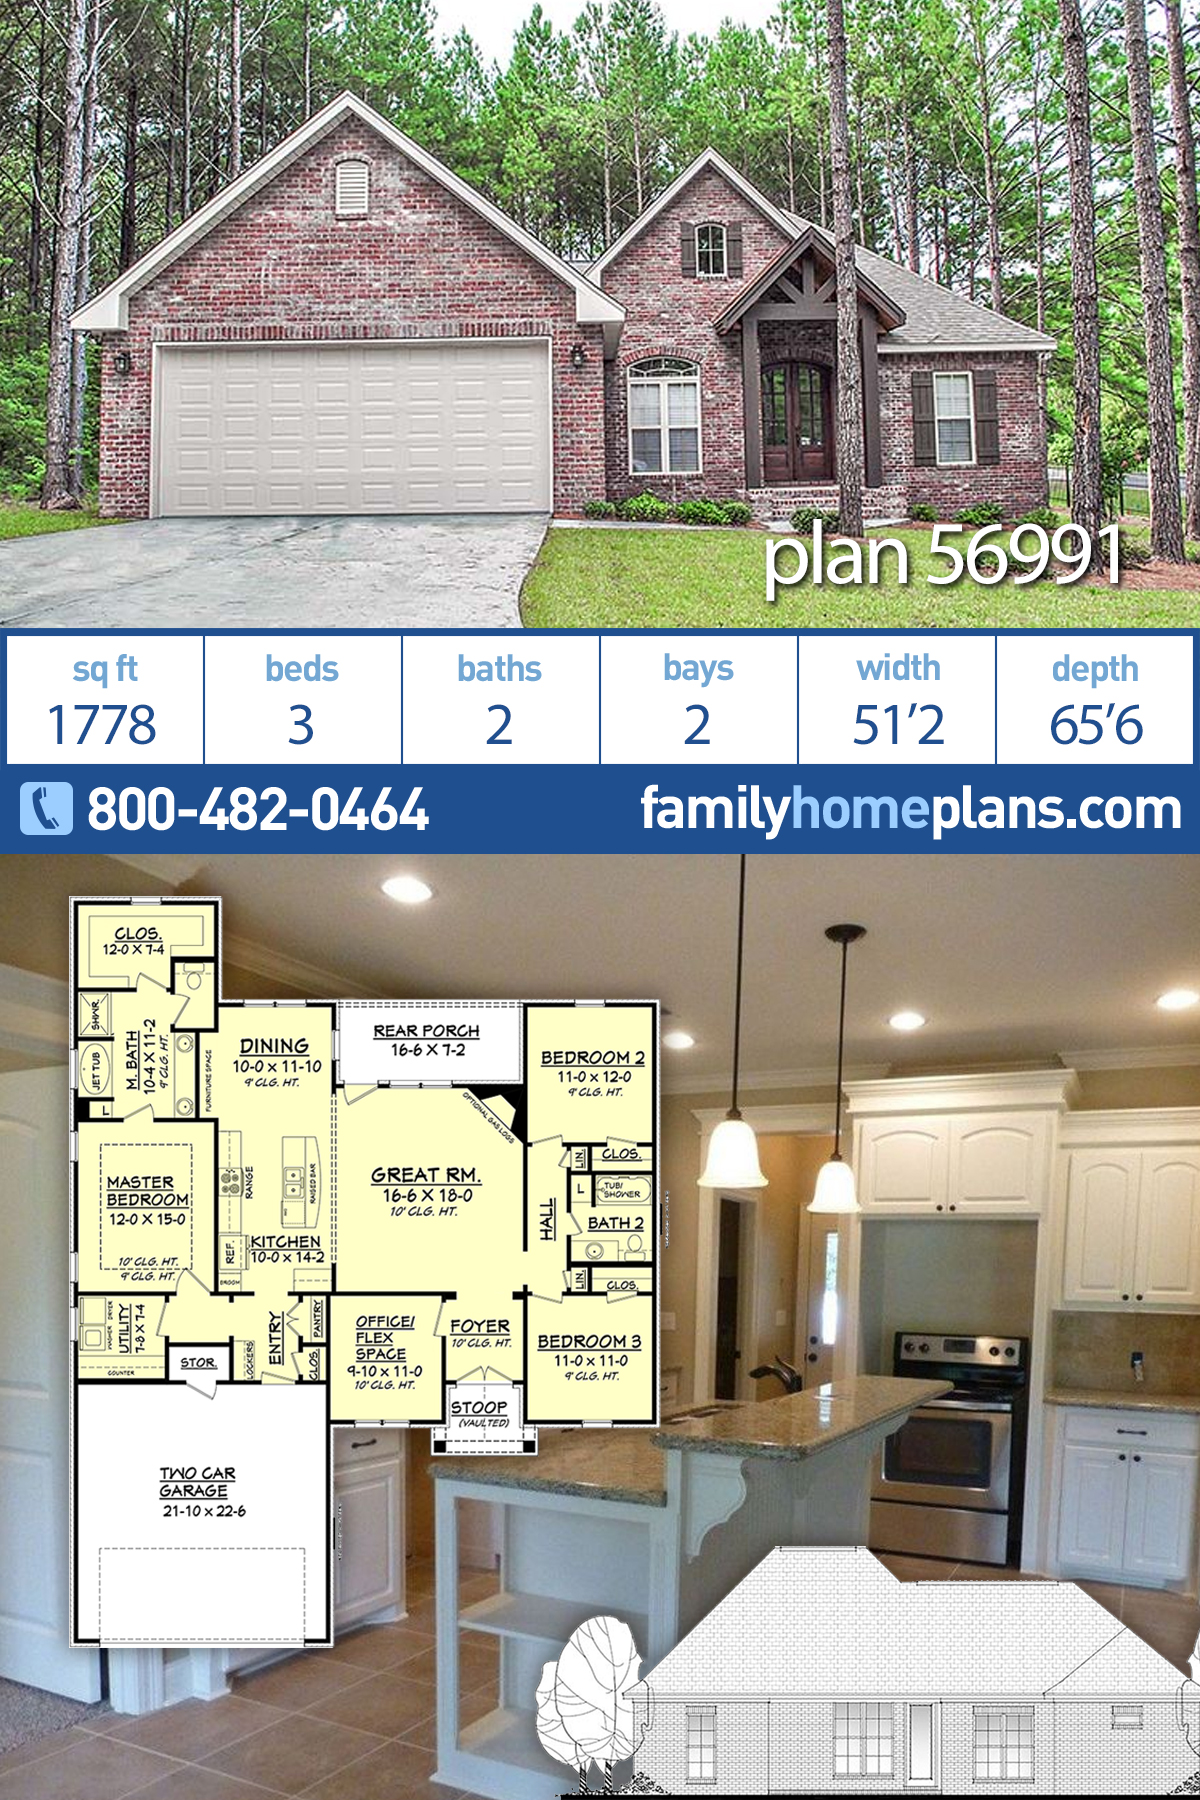 Country, French Country, Traditional House Plan 56991 with 3 Beds , 2 Baths , 2 Car Garage